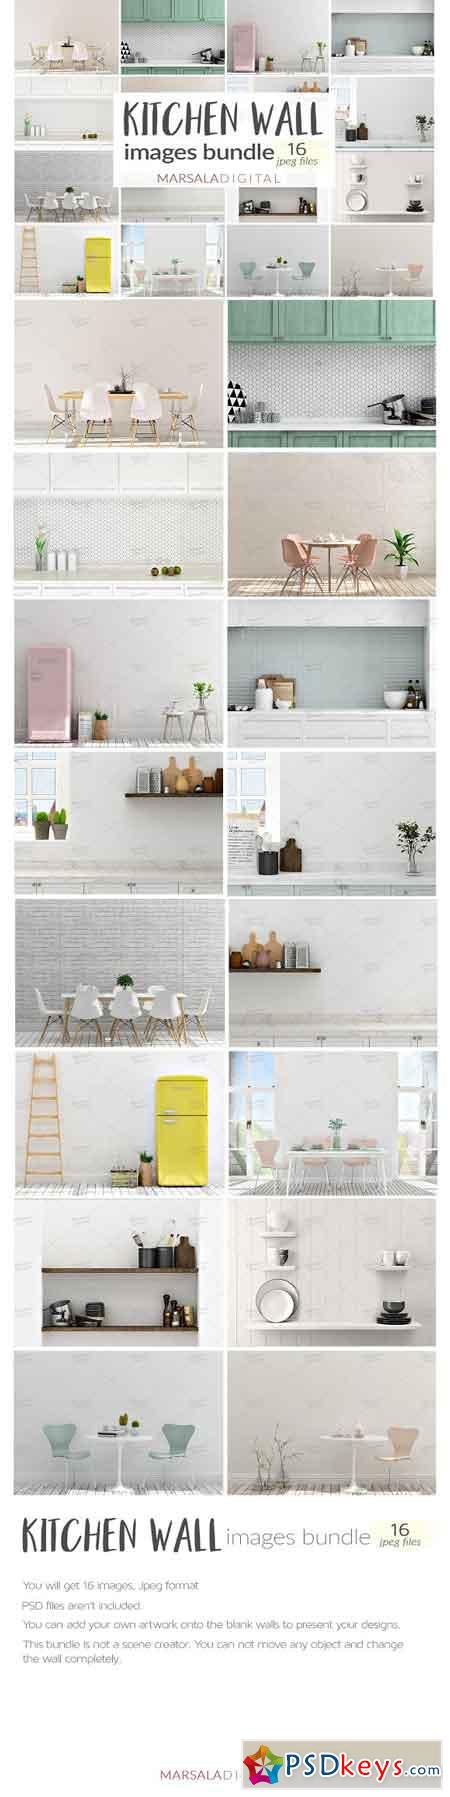 Kitchen Wall Images Bundle 2578737